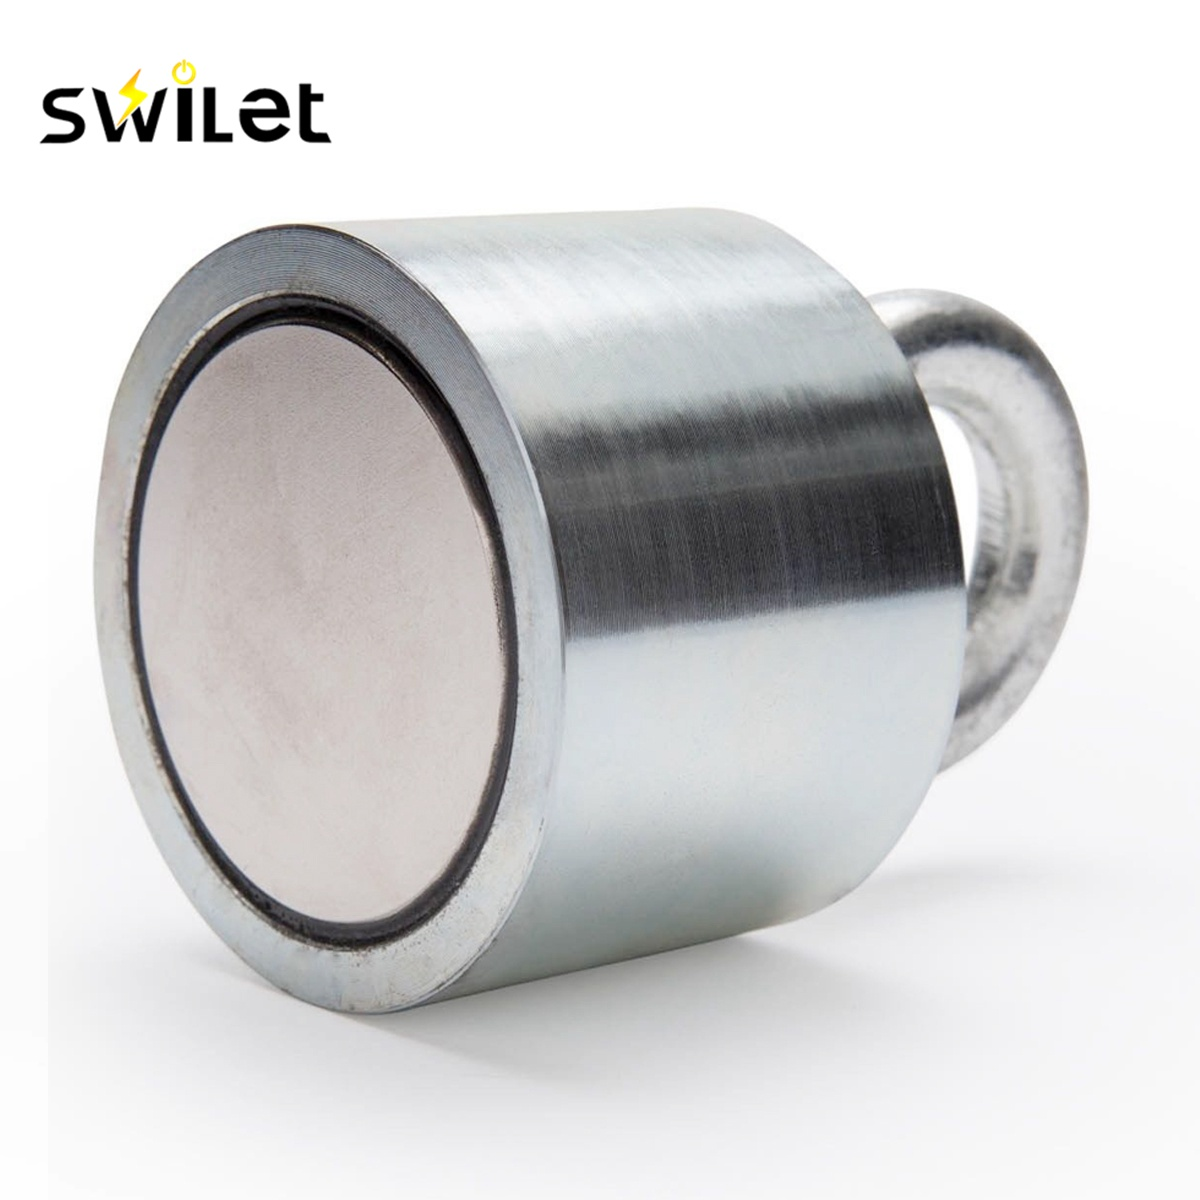 SWILET 1PCS 55x40mm 200kg Neodymium Recovery Magnet Metal Detector with Handle Ringscrew High Quality Powerful girl party dress christmas dress for girl 2017 summer formal girl flower gir dresses junior girls prom gown dresses baby clothes